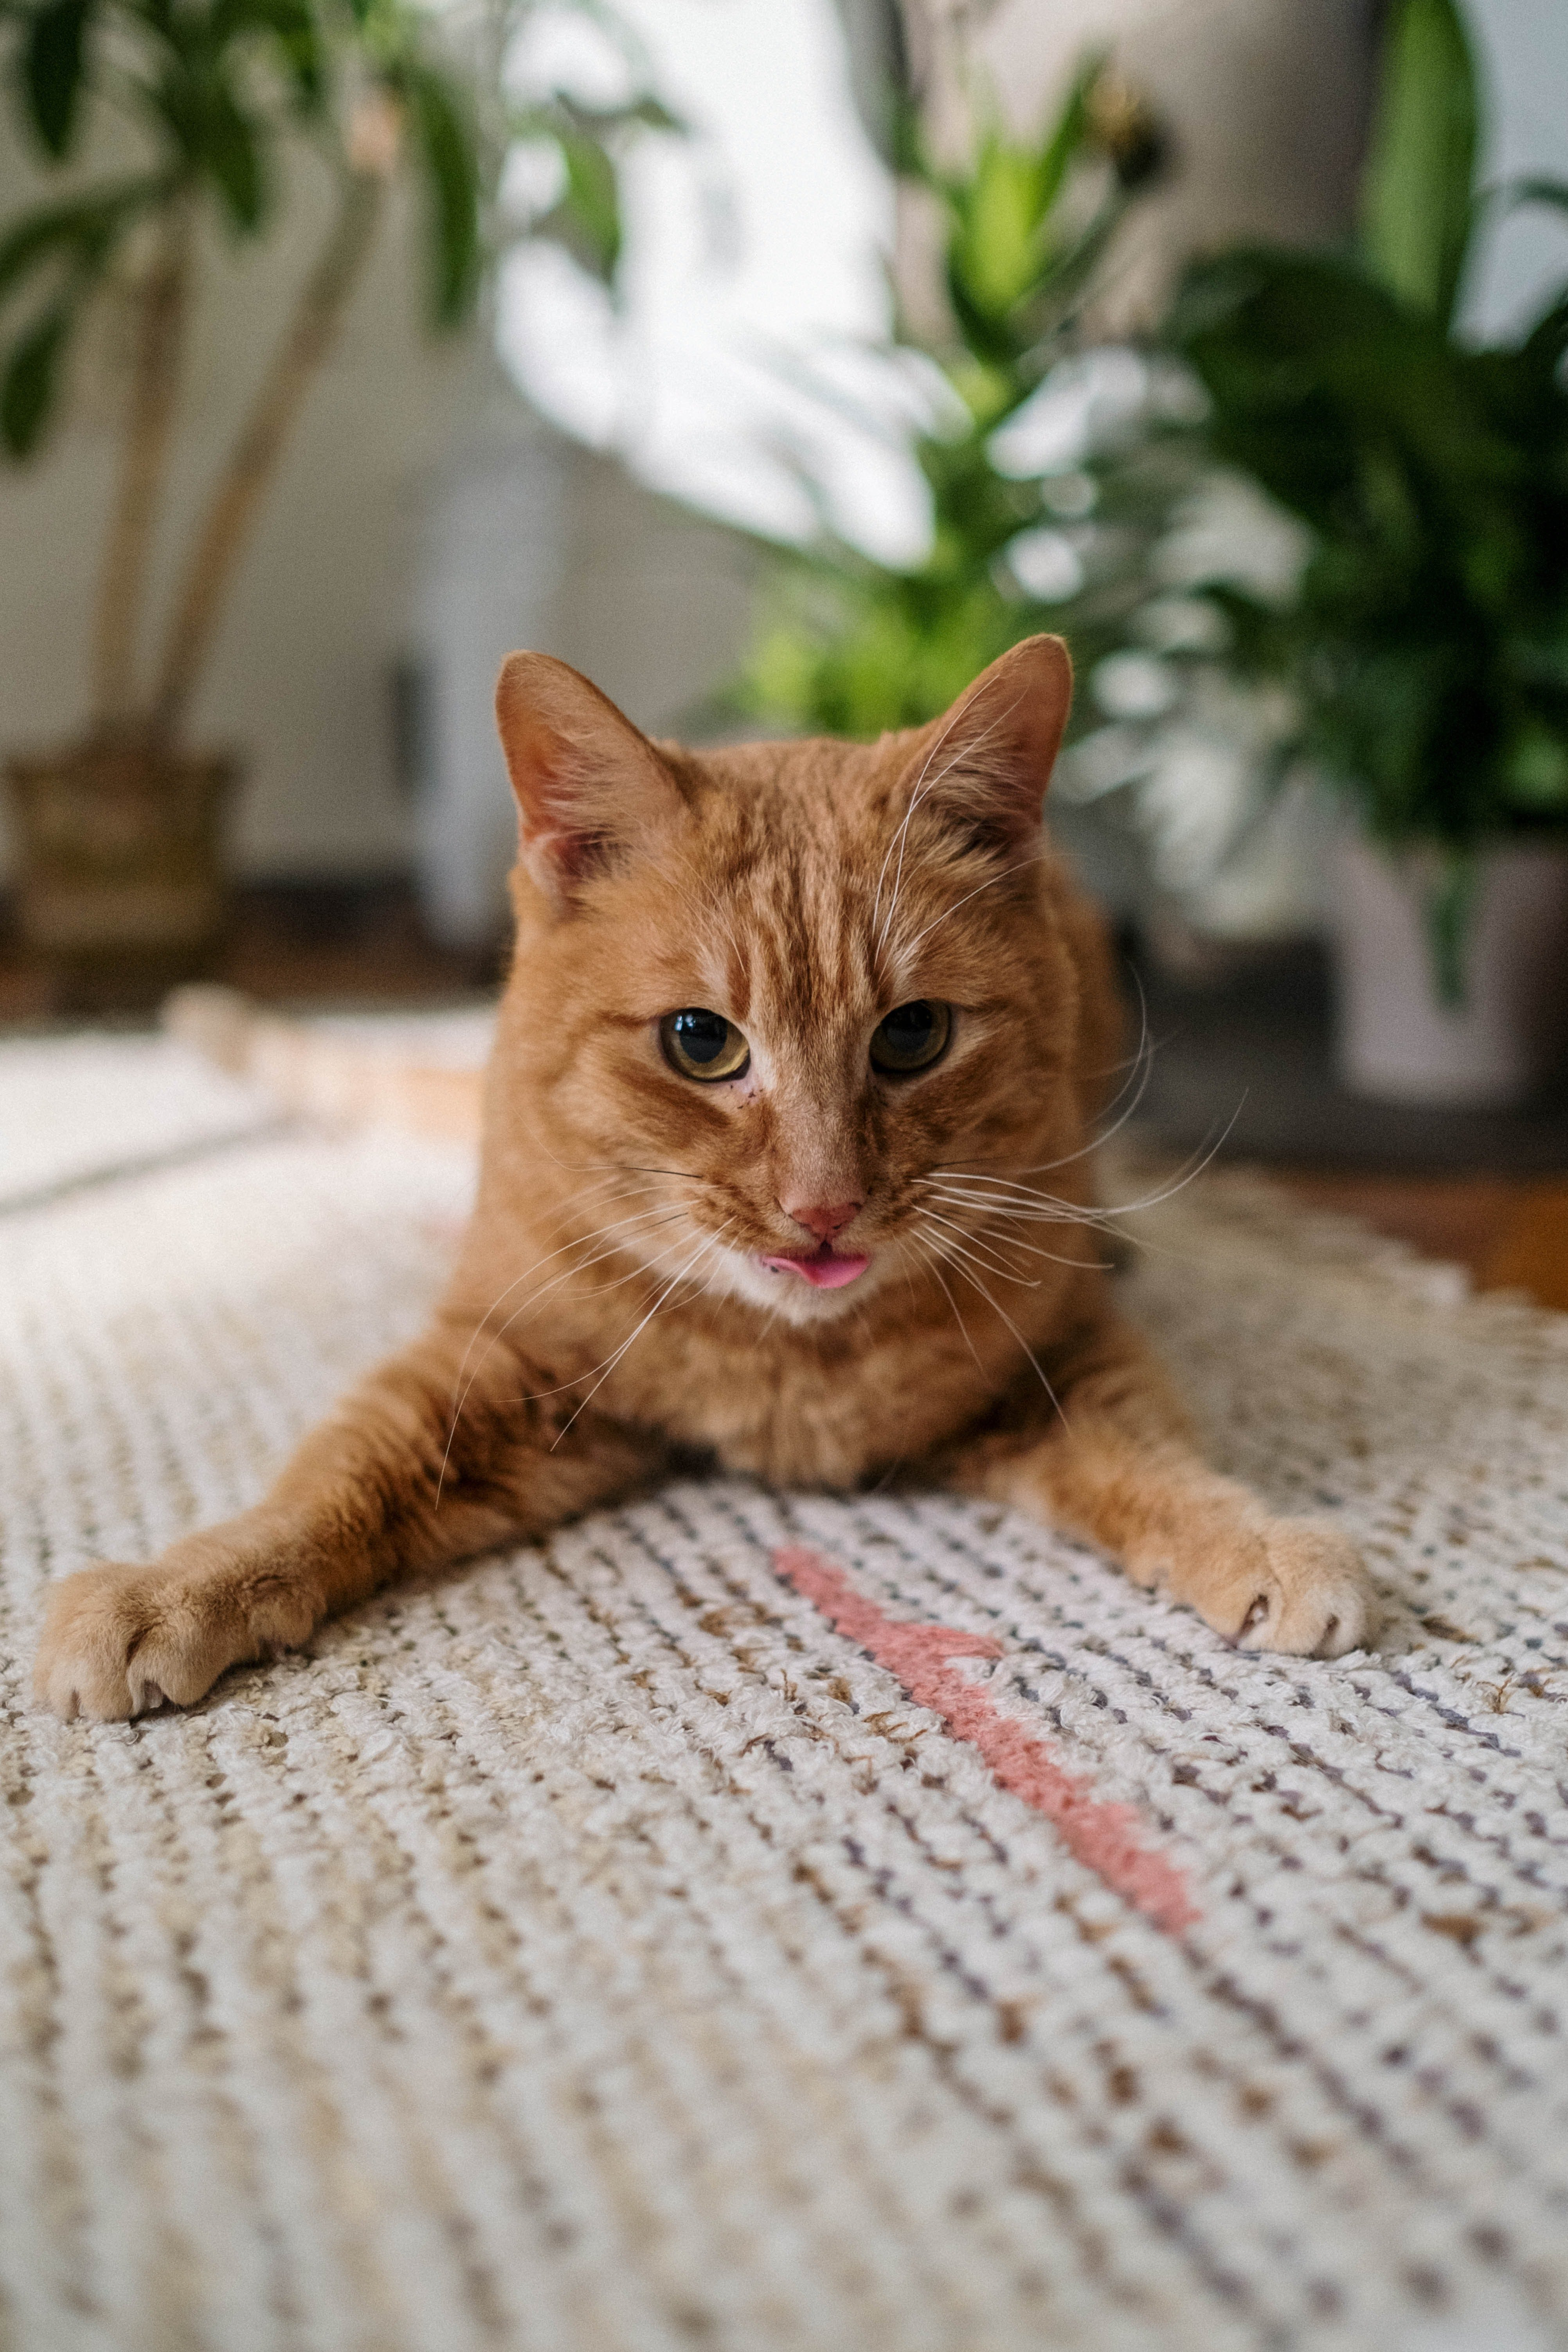 A ginger cat relaxes on a mat with its tongue out | Photo: Pexels/cottonbro